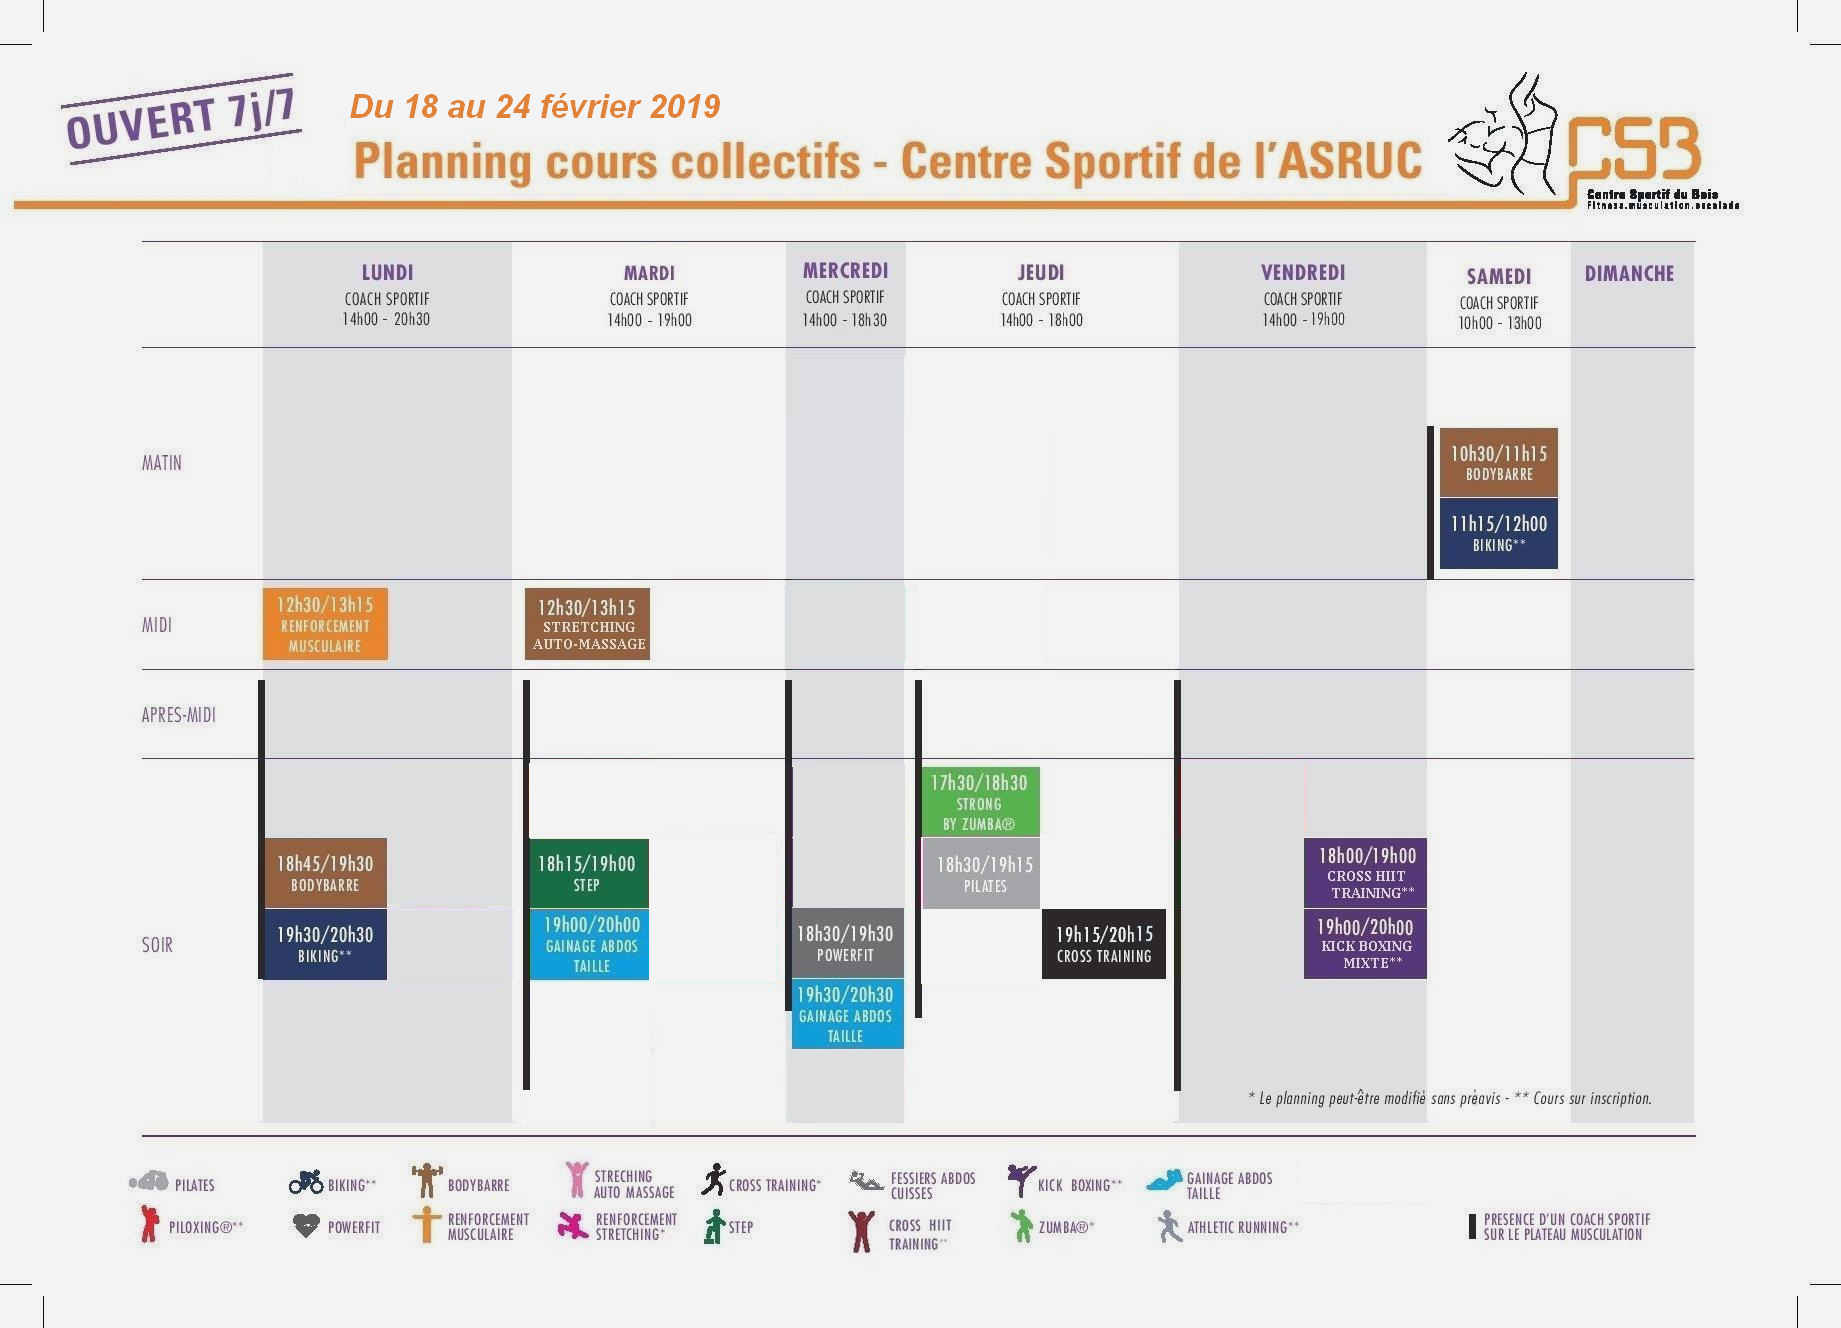 Planning cours co